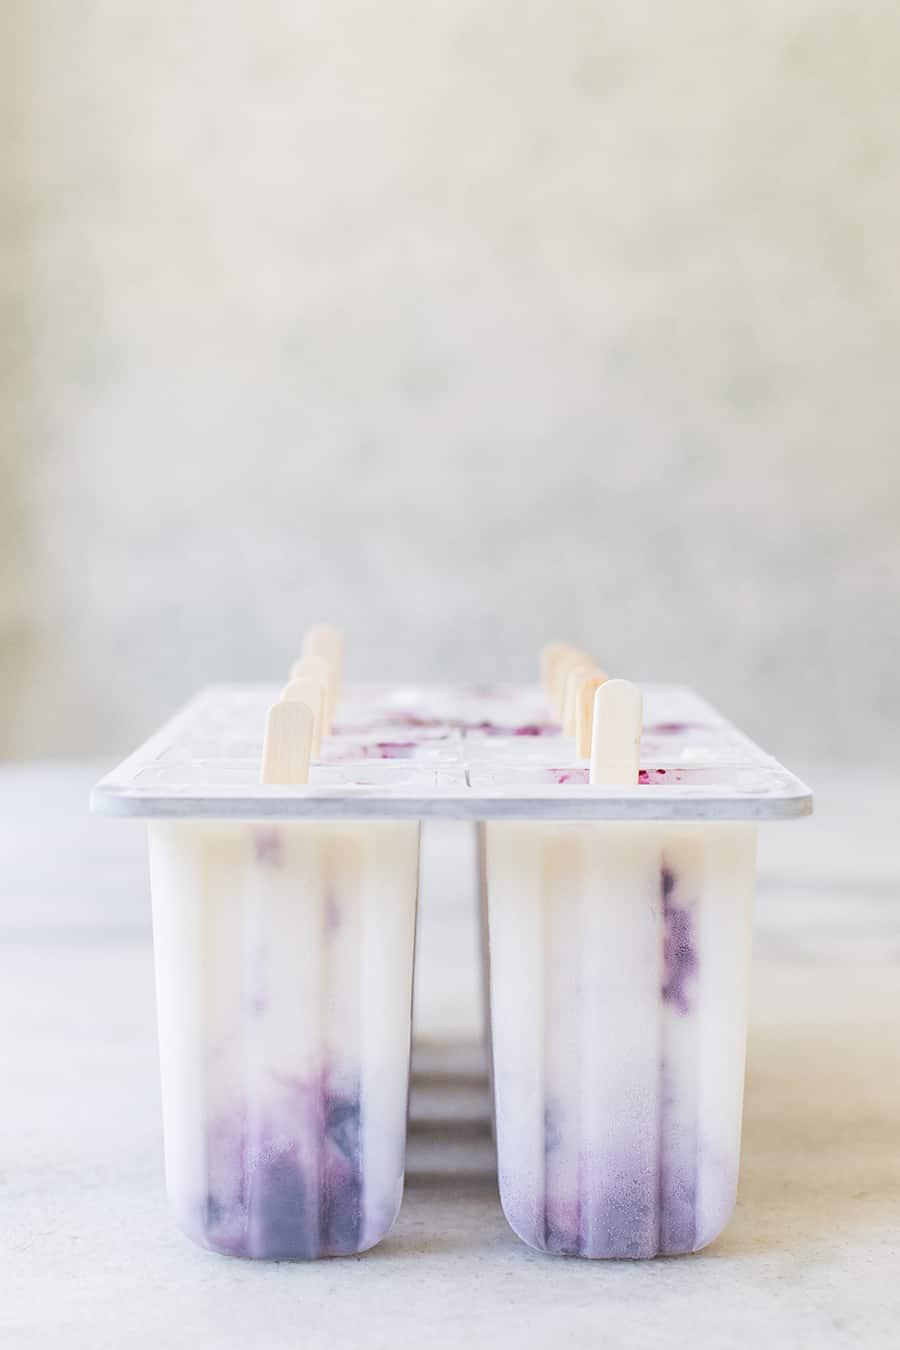 Blueberry popsicles in a popsicle mold on a marble table.